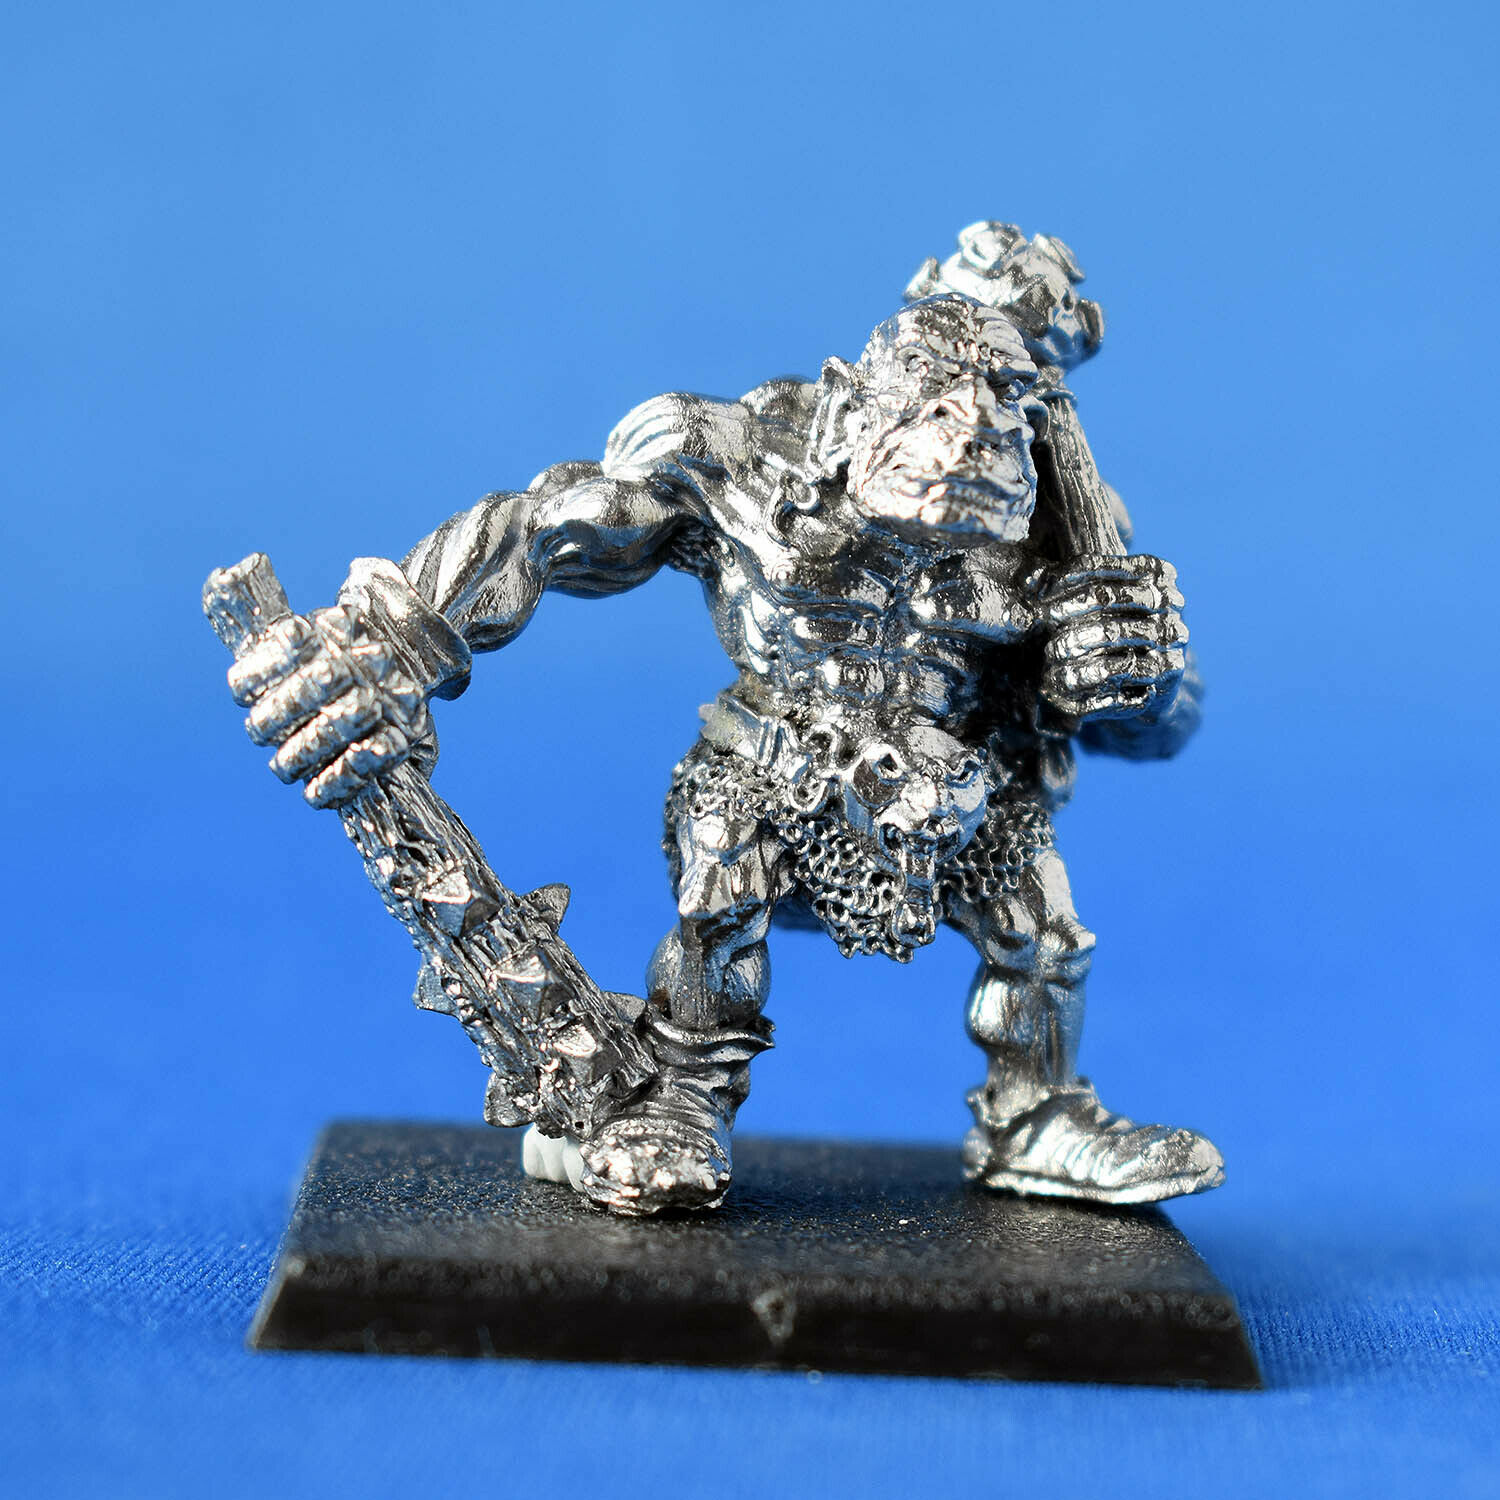 WARHAMMER CITADEL OOP 40K C23 BOB OLLEY OGRYN OGRE CLUB MACE GAMES WORKSHOP